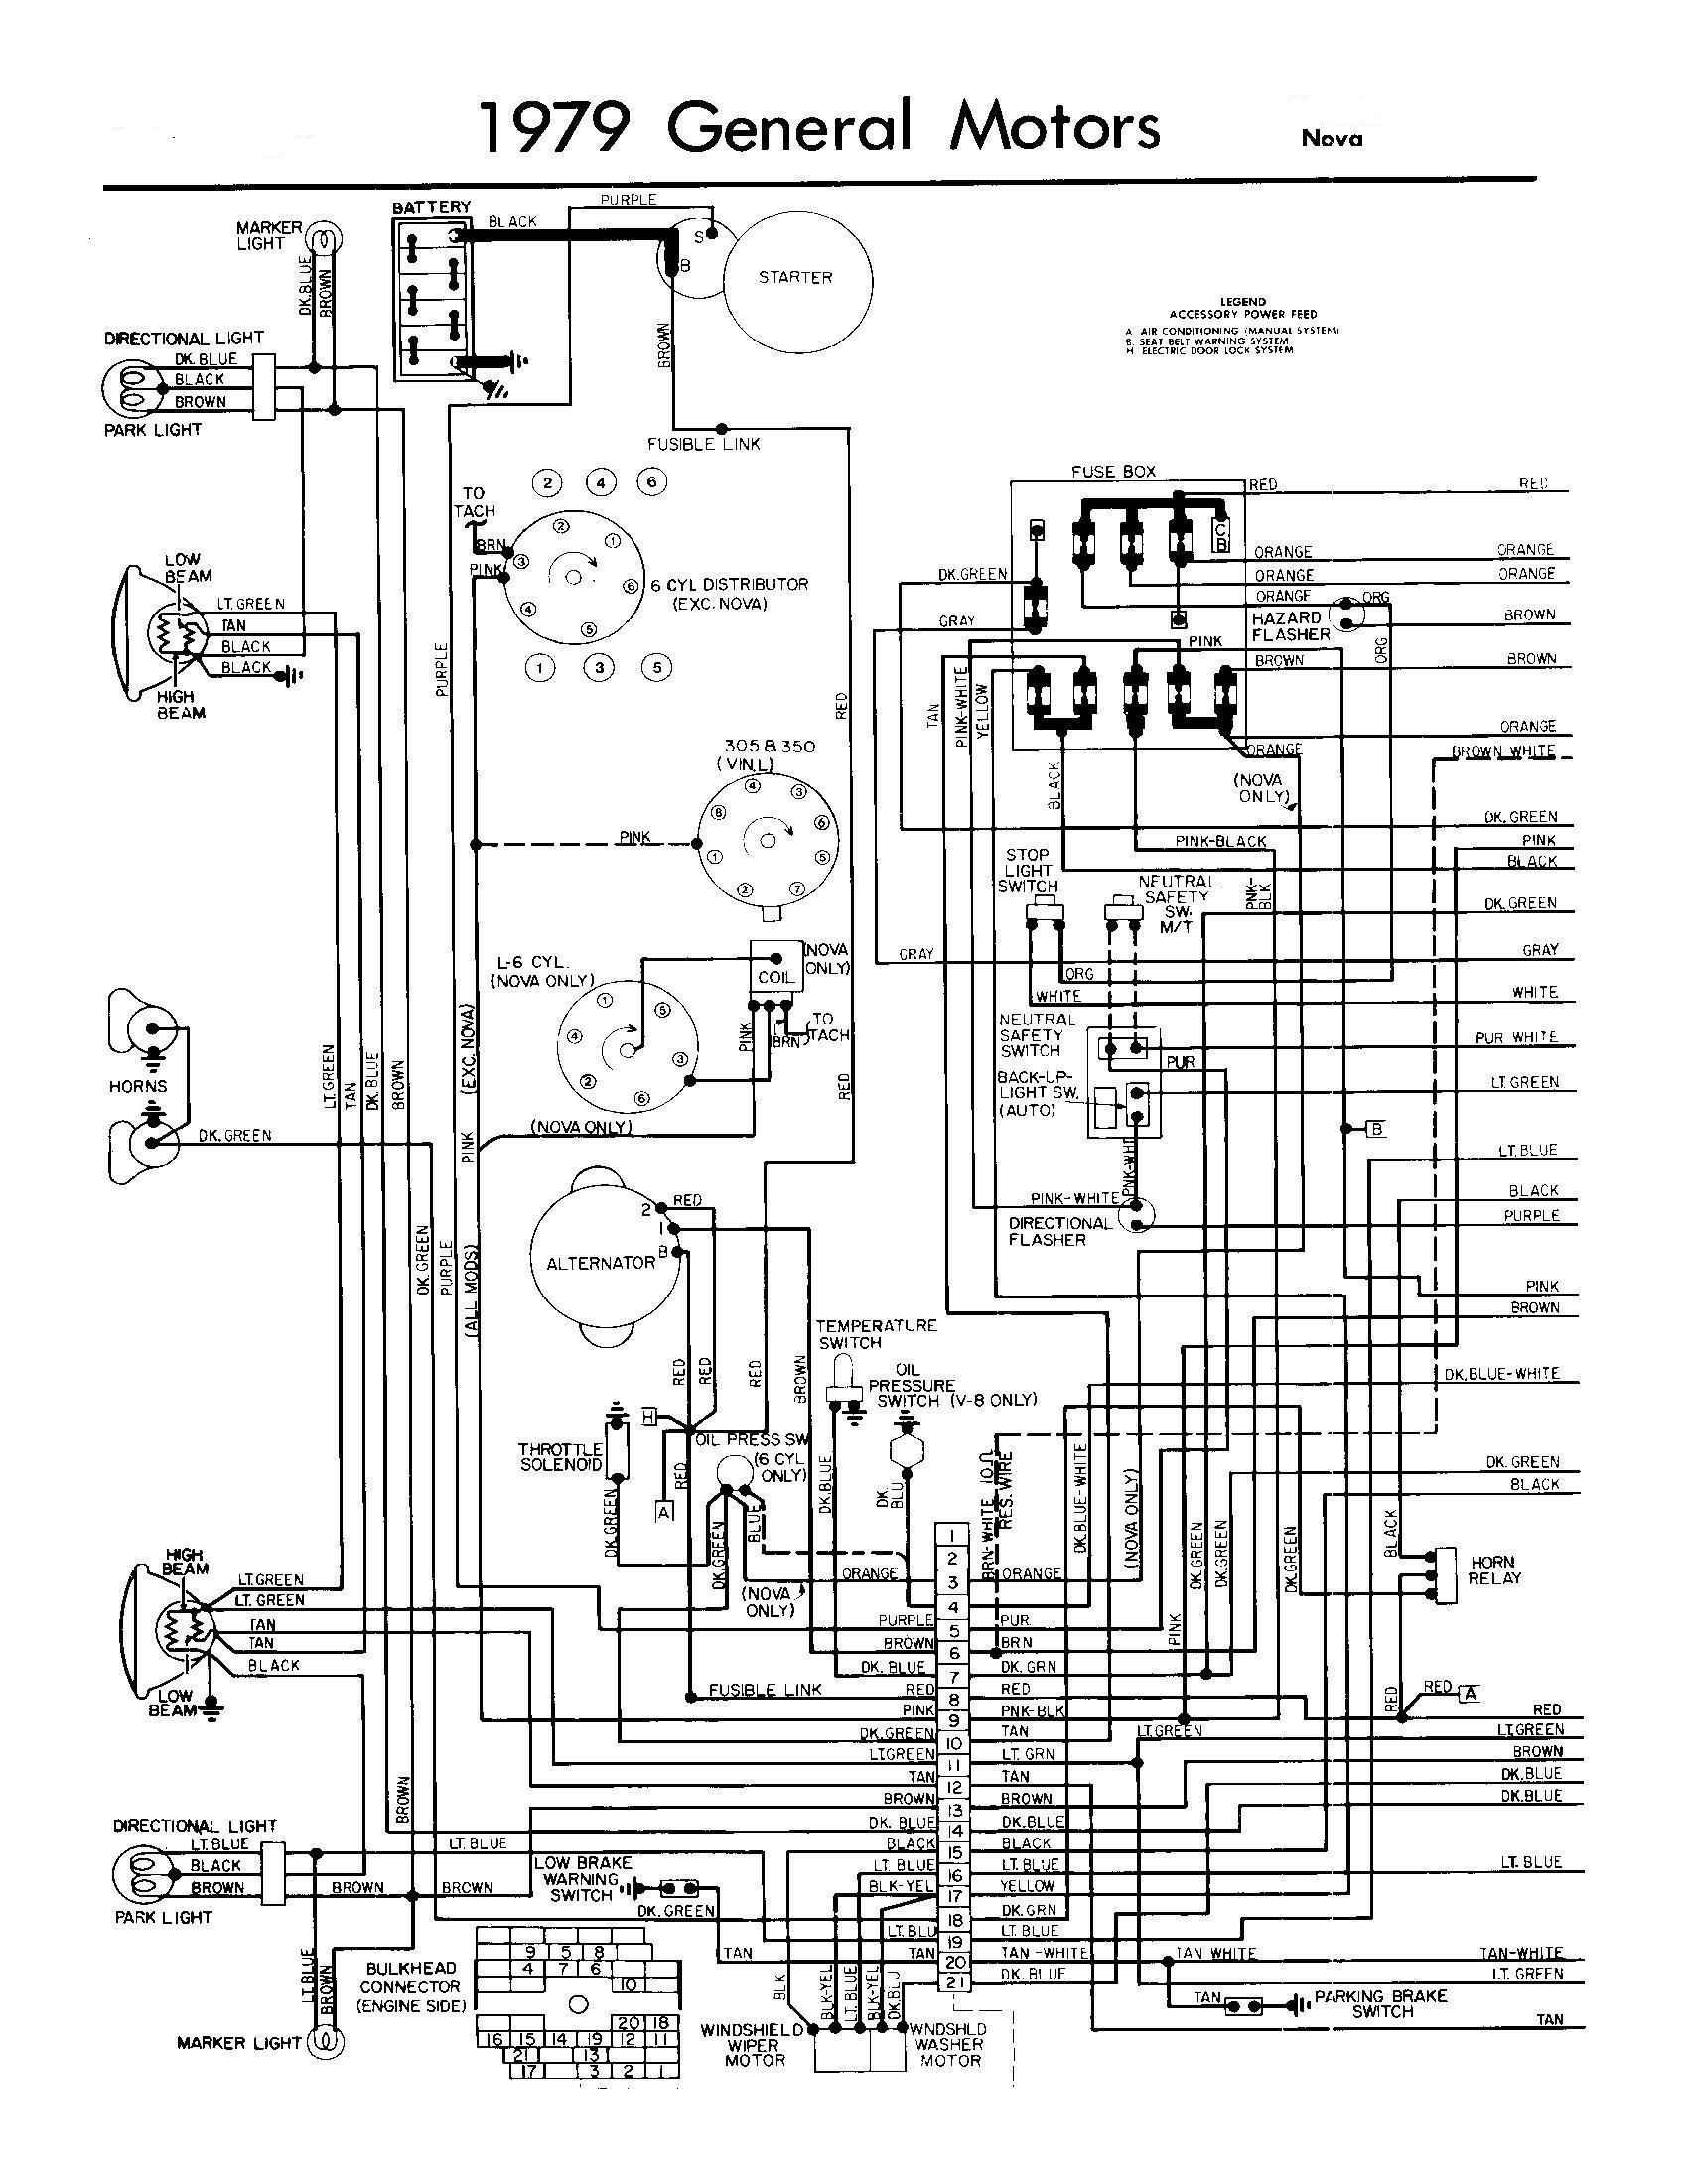 Wiring Diagram For 2001 Ferrari 360 - Wiring Diagrams Interval on